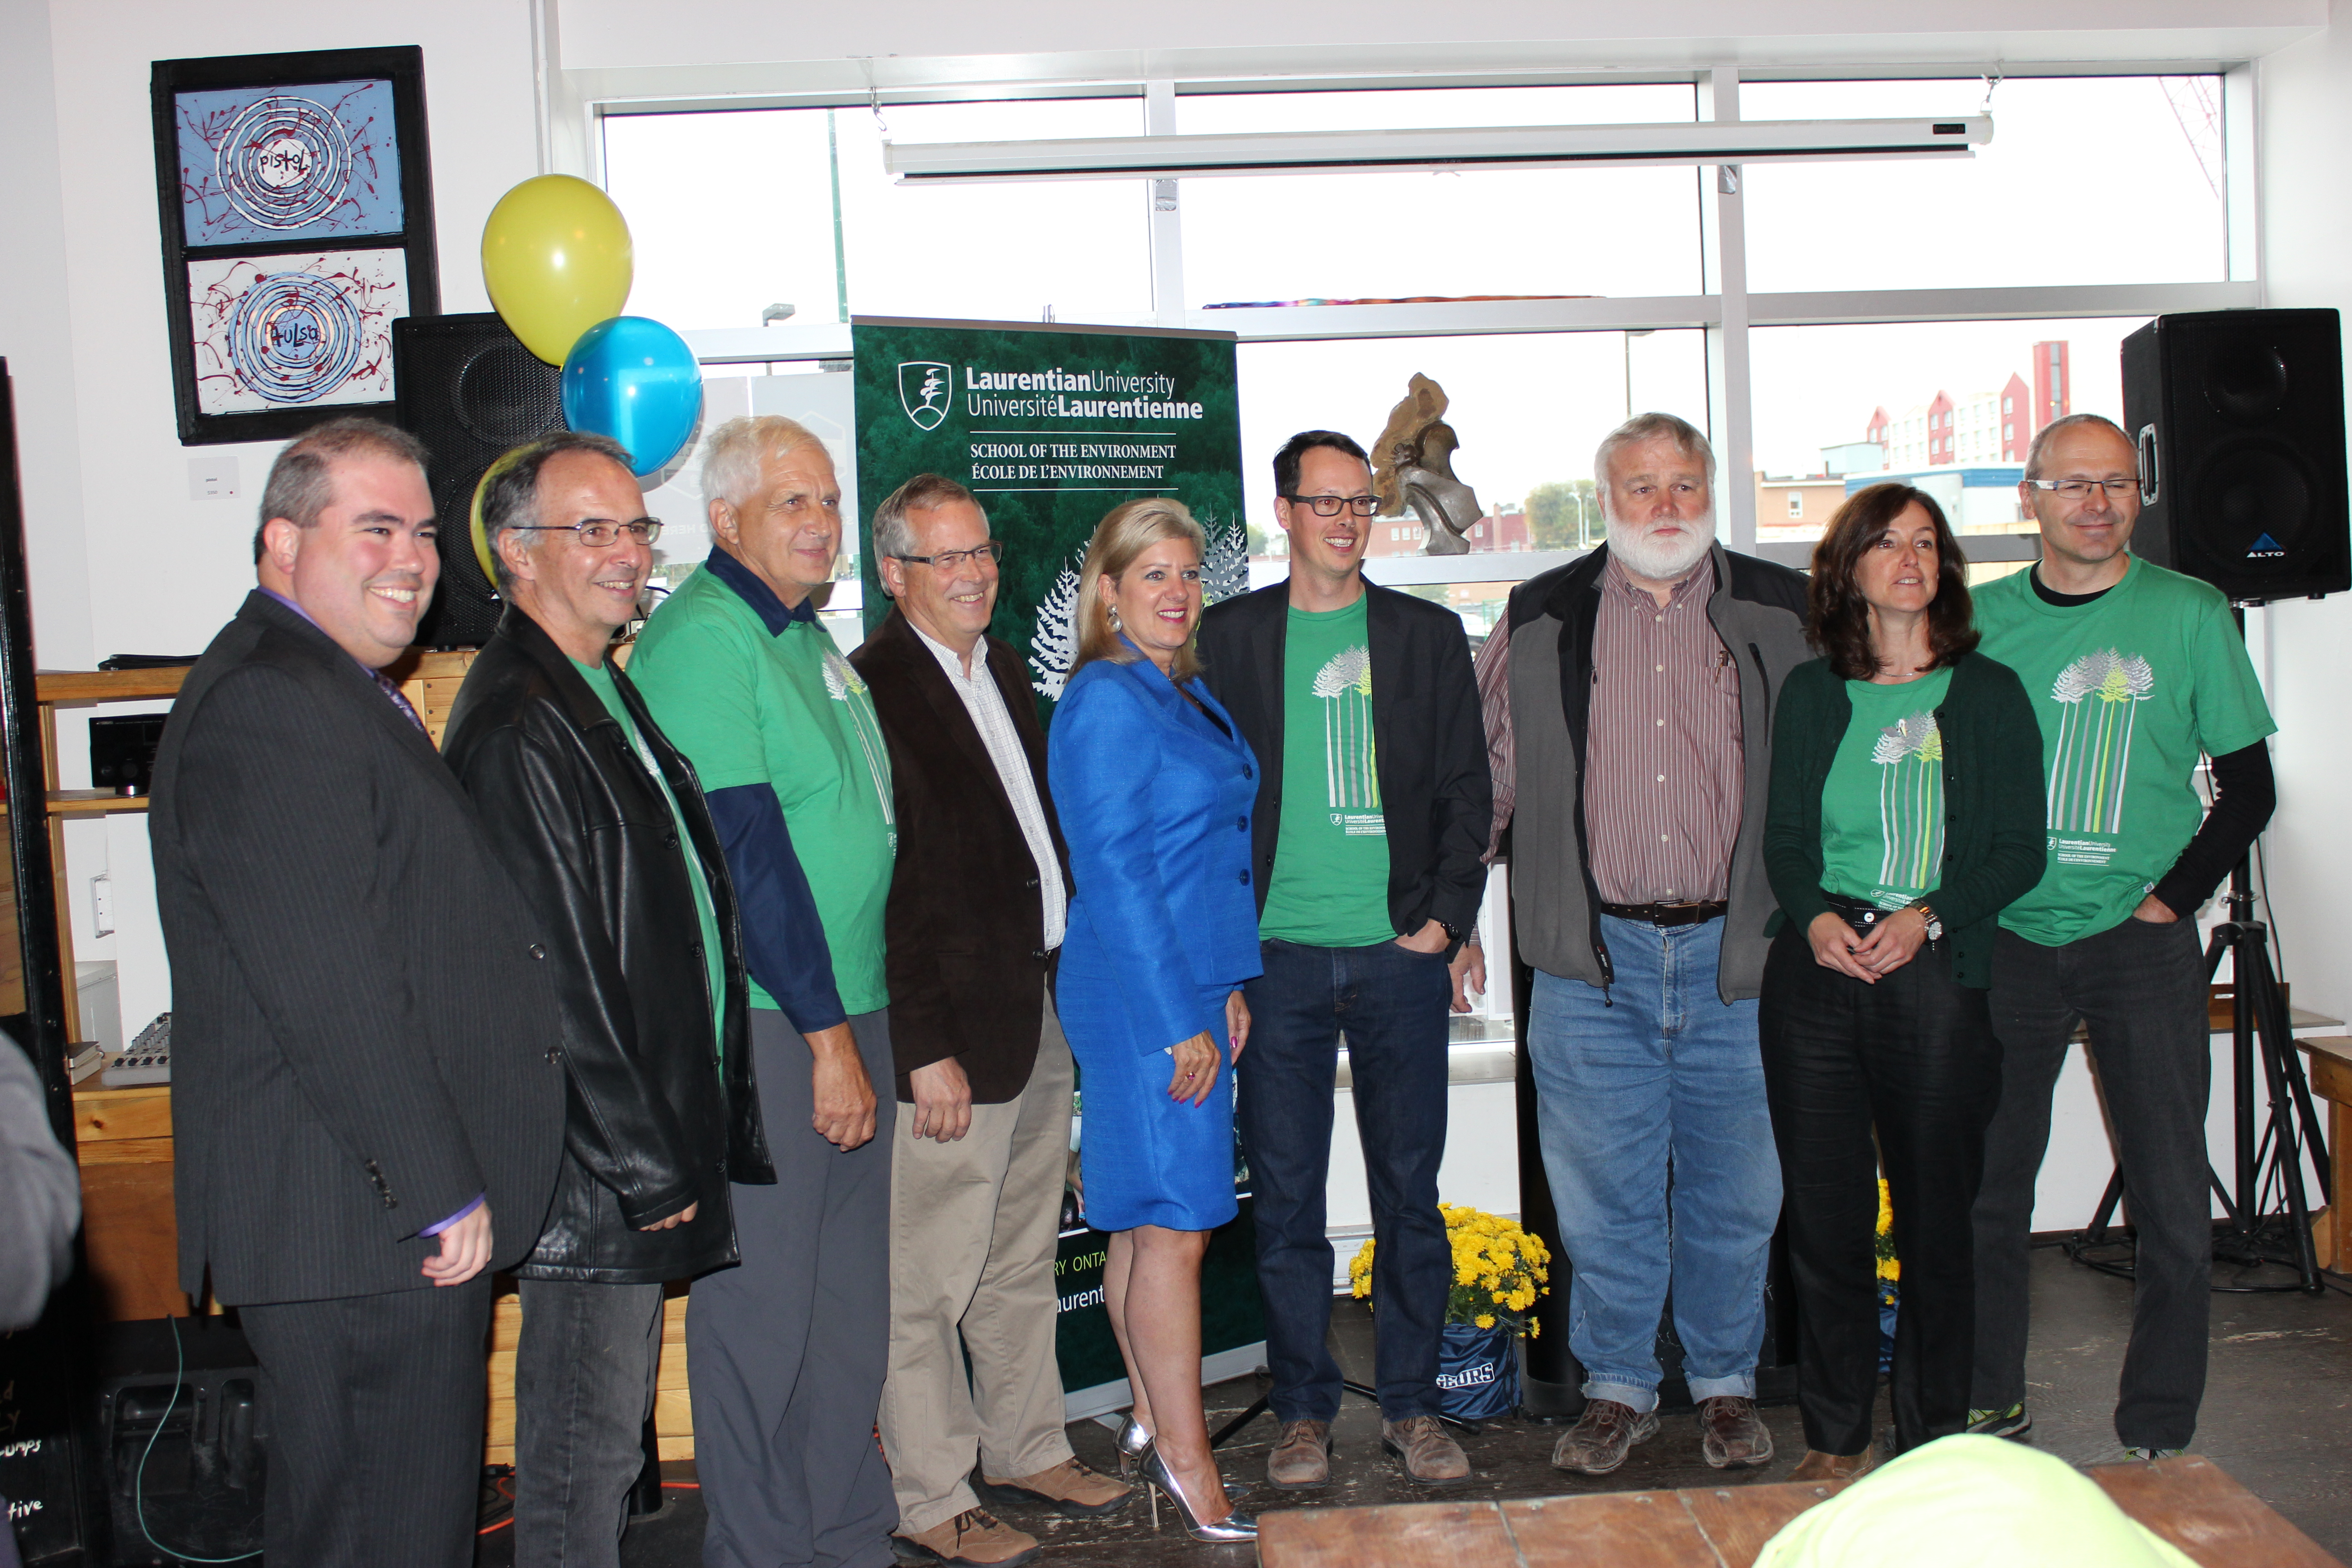 Above (from the left): Dominic Girouz, Dr. John Gunn, Dr. Peter Beckett, Bill Lautenbach, Mayor Marianne Matichuk, Dr. Brett Buchanan, Dr. Grame Spiers, Dr. Anne Watelet, Dr. Francois Caron. Photo by Anthony Crozzoli.